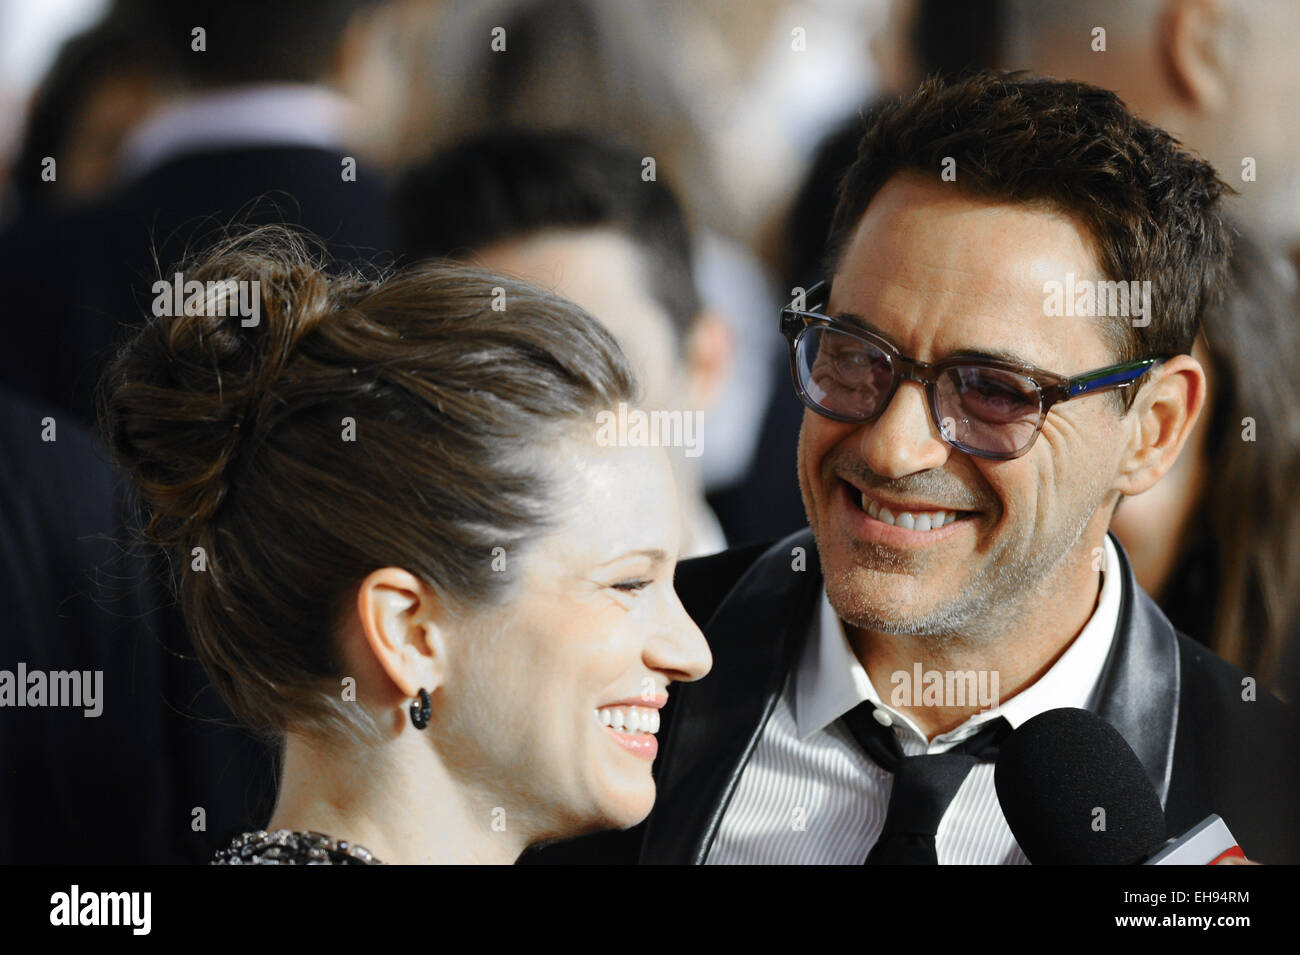 The 39th Toronto International Film Festival at the Roy Thomson Hall - 'The Judge' - Premiere Featuring: - Stock Image